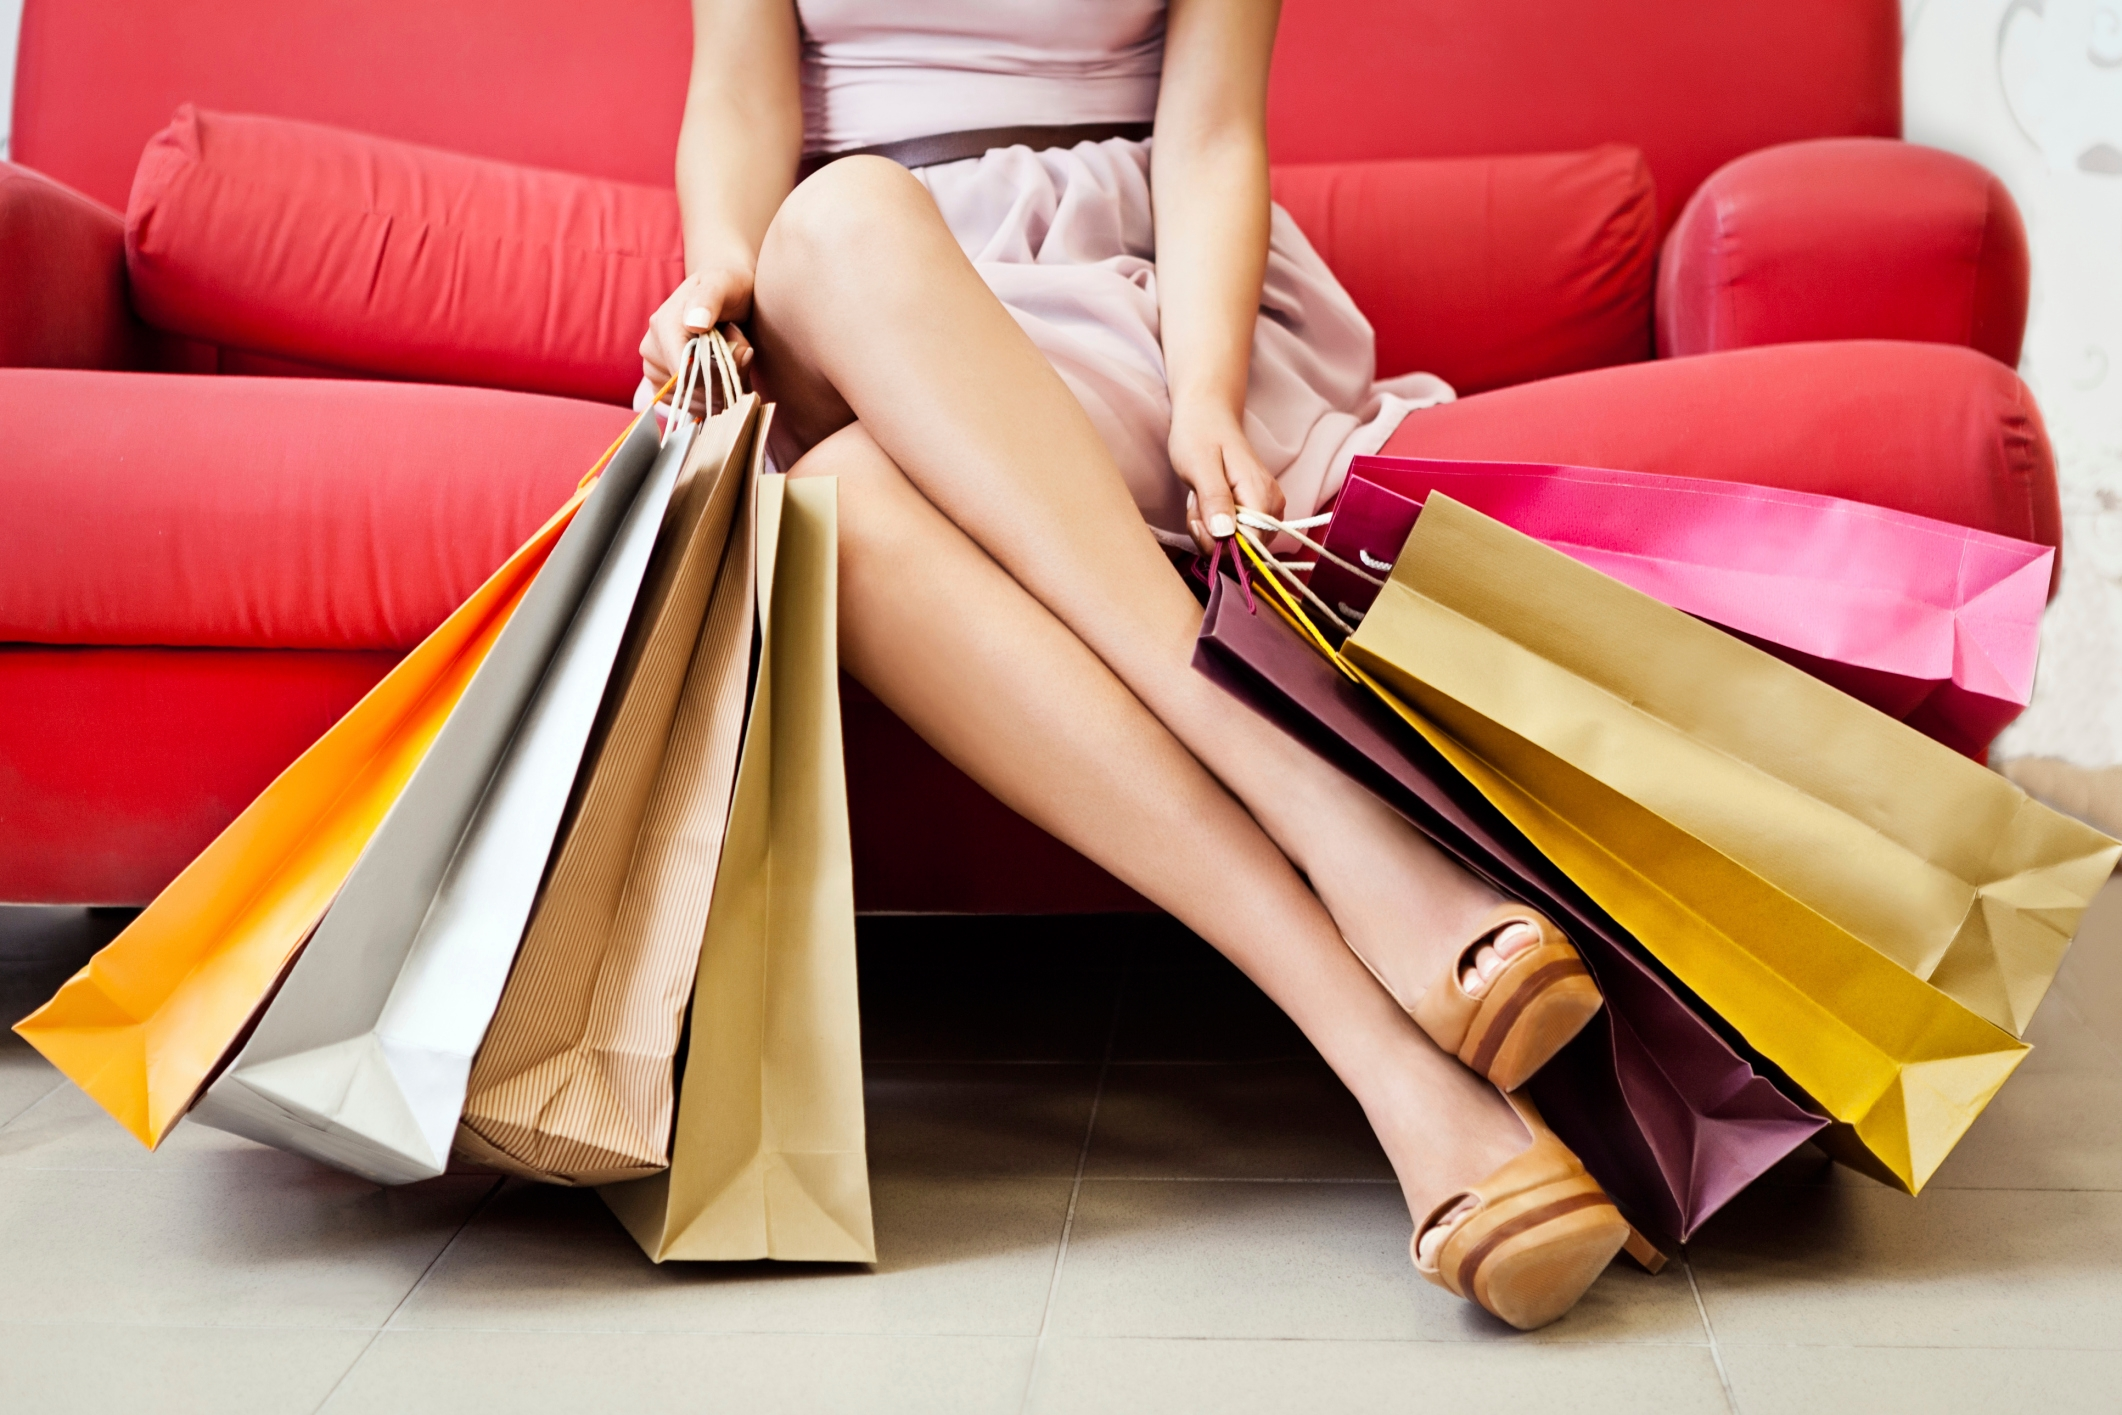 Investment special: Which shops to bet on as recovery begins